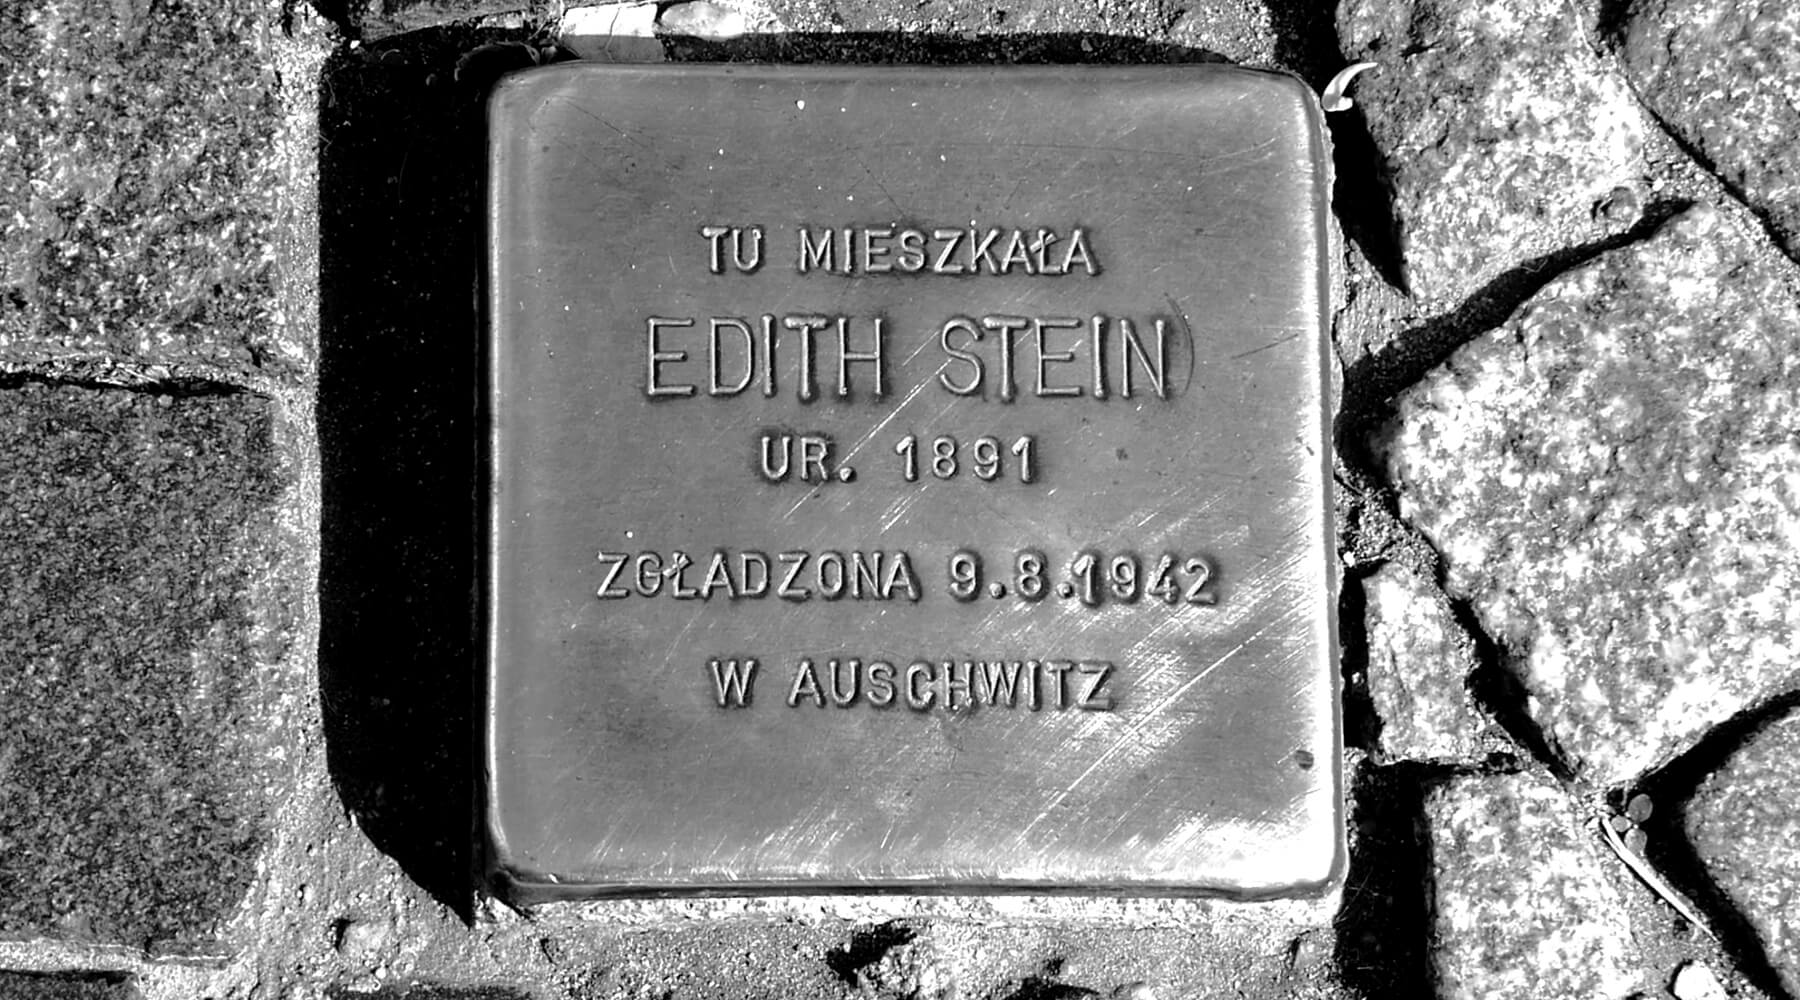 A walk in the footsteps of Edith Stein